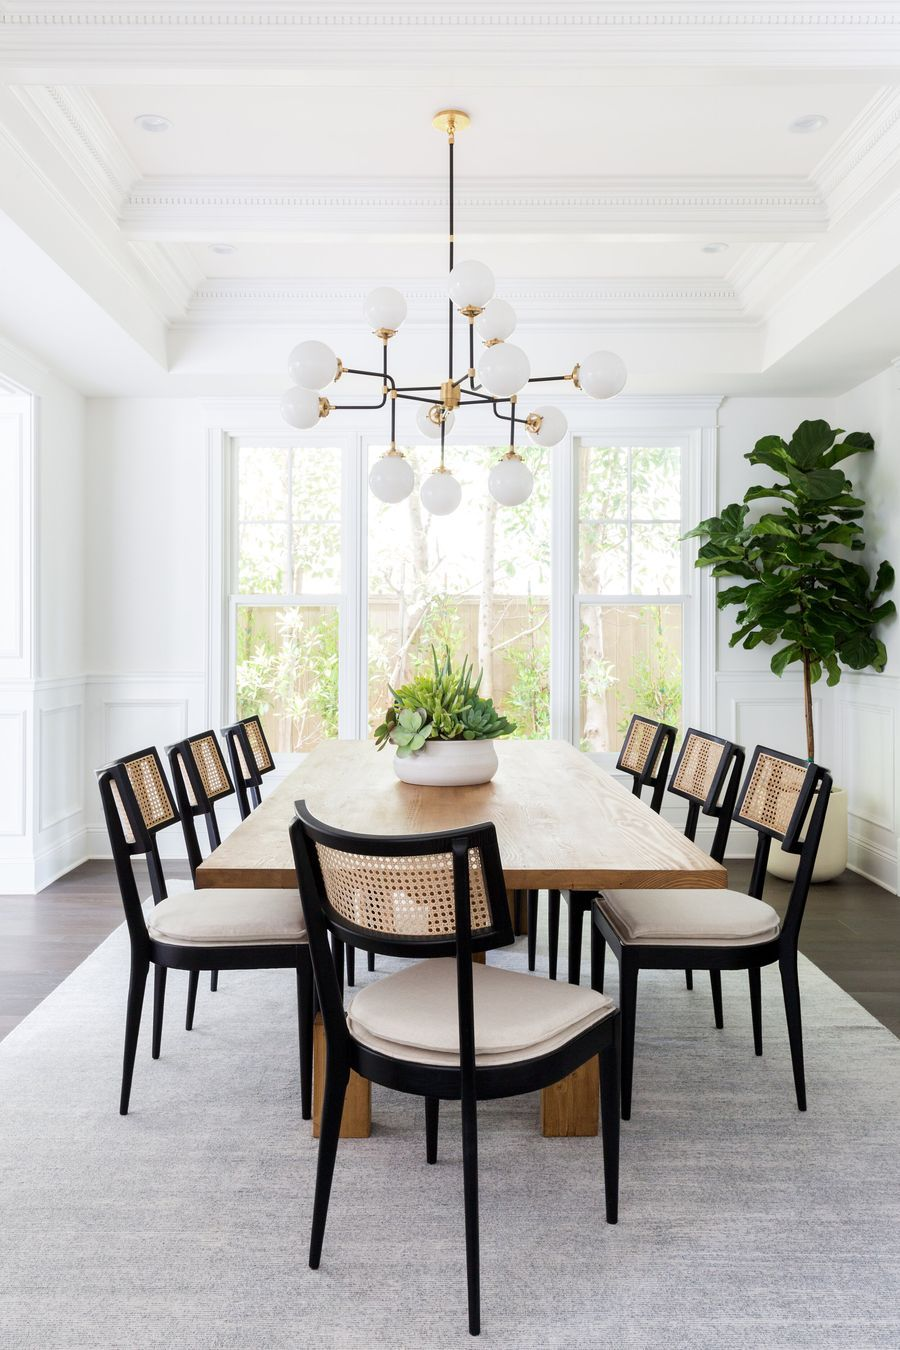 black and wicker dining chair inspiration, affordable dining chairs, boho dining chairs, boho dining chair inspiration, simple dining chairs, rustic dining chairs, rattan dining chair inspiration, wicker dining chair inspiration, dining chairs inspiration, dining room inspiration, dining room ideas, dining room table styling ideas